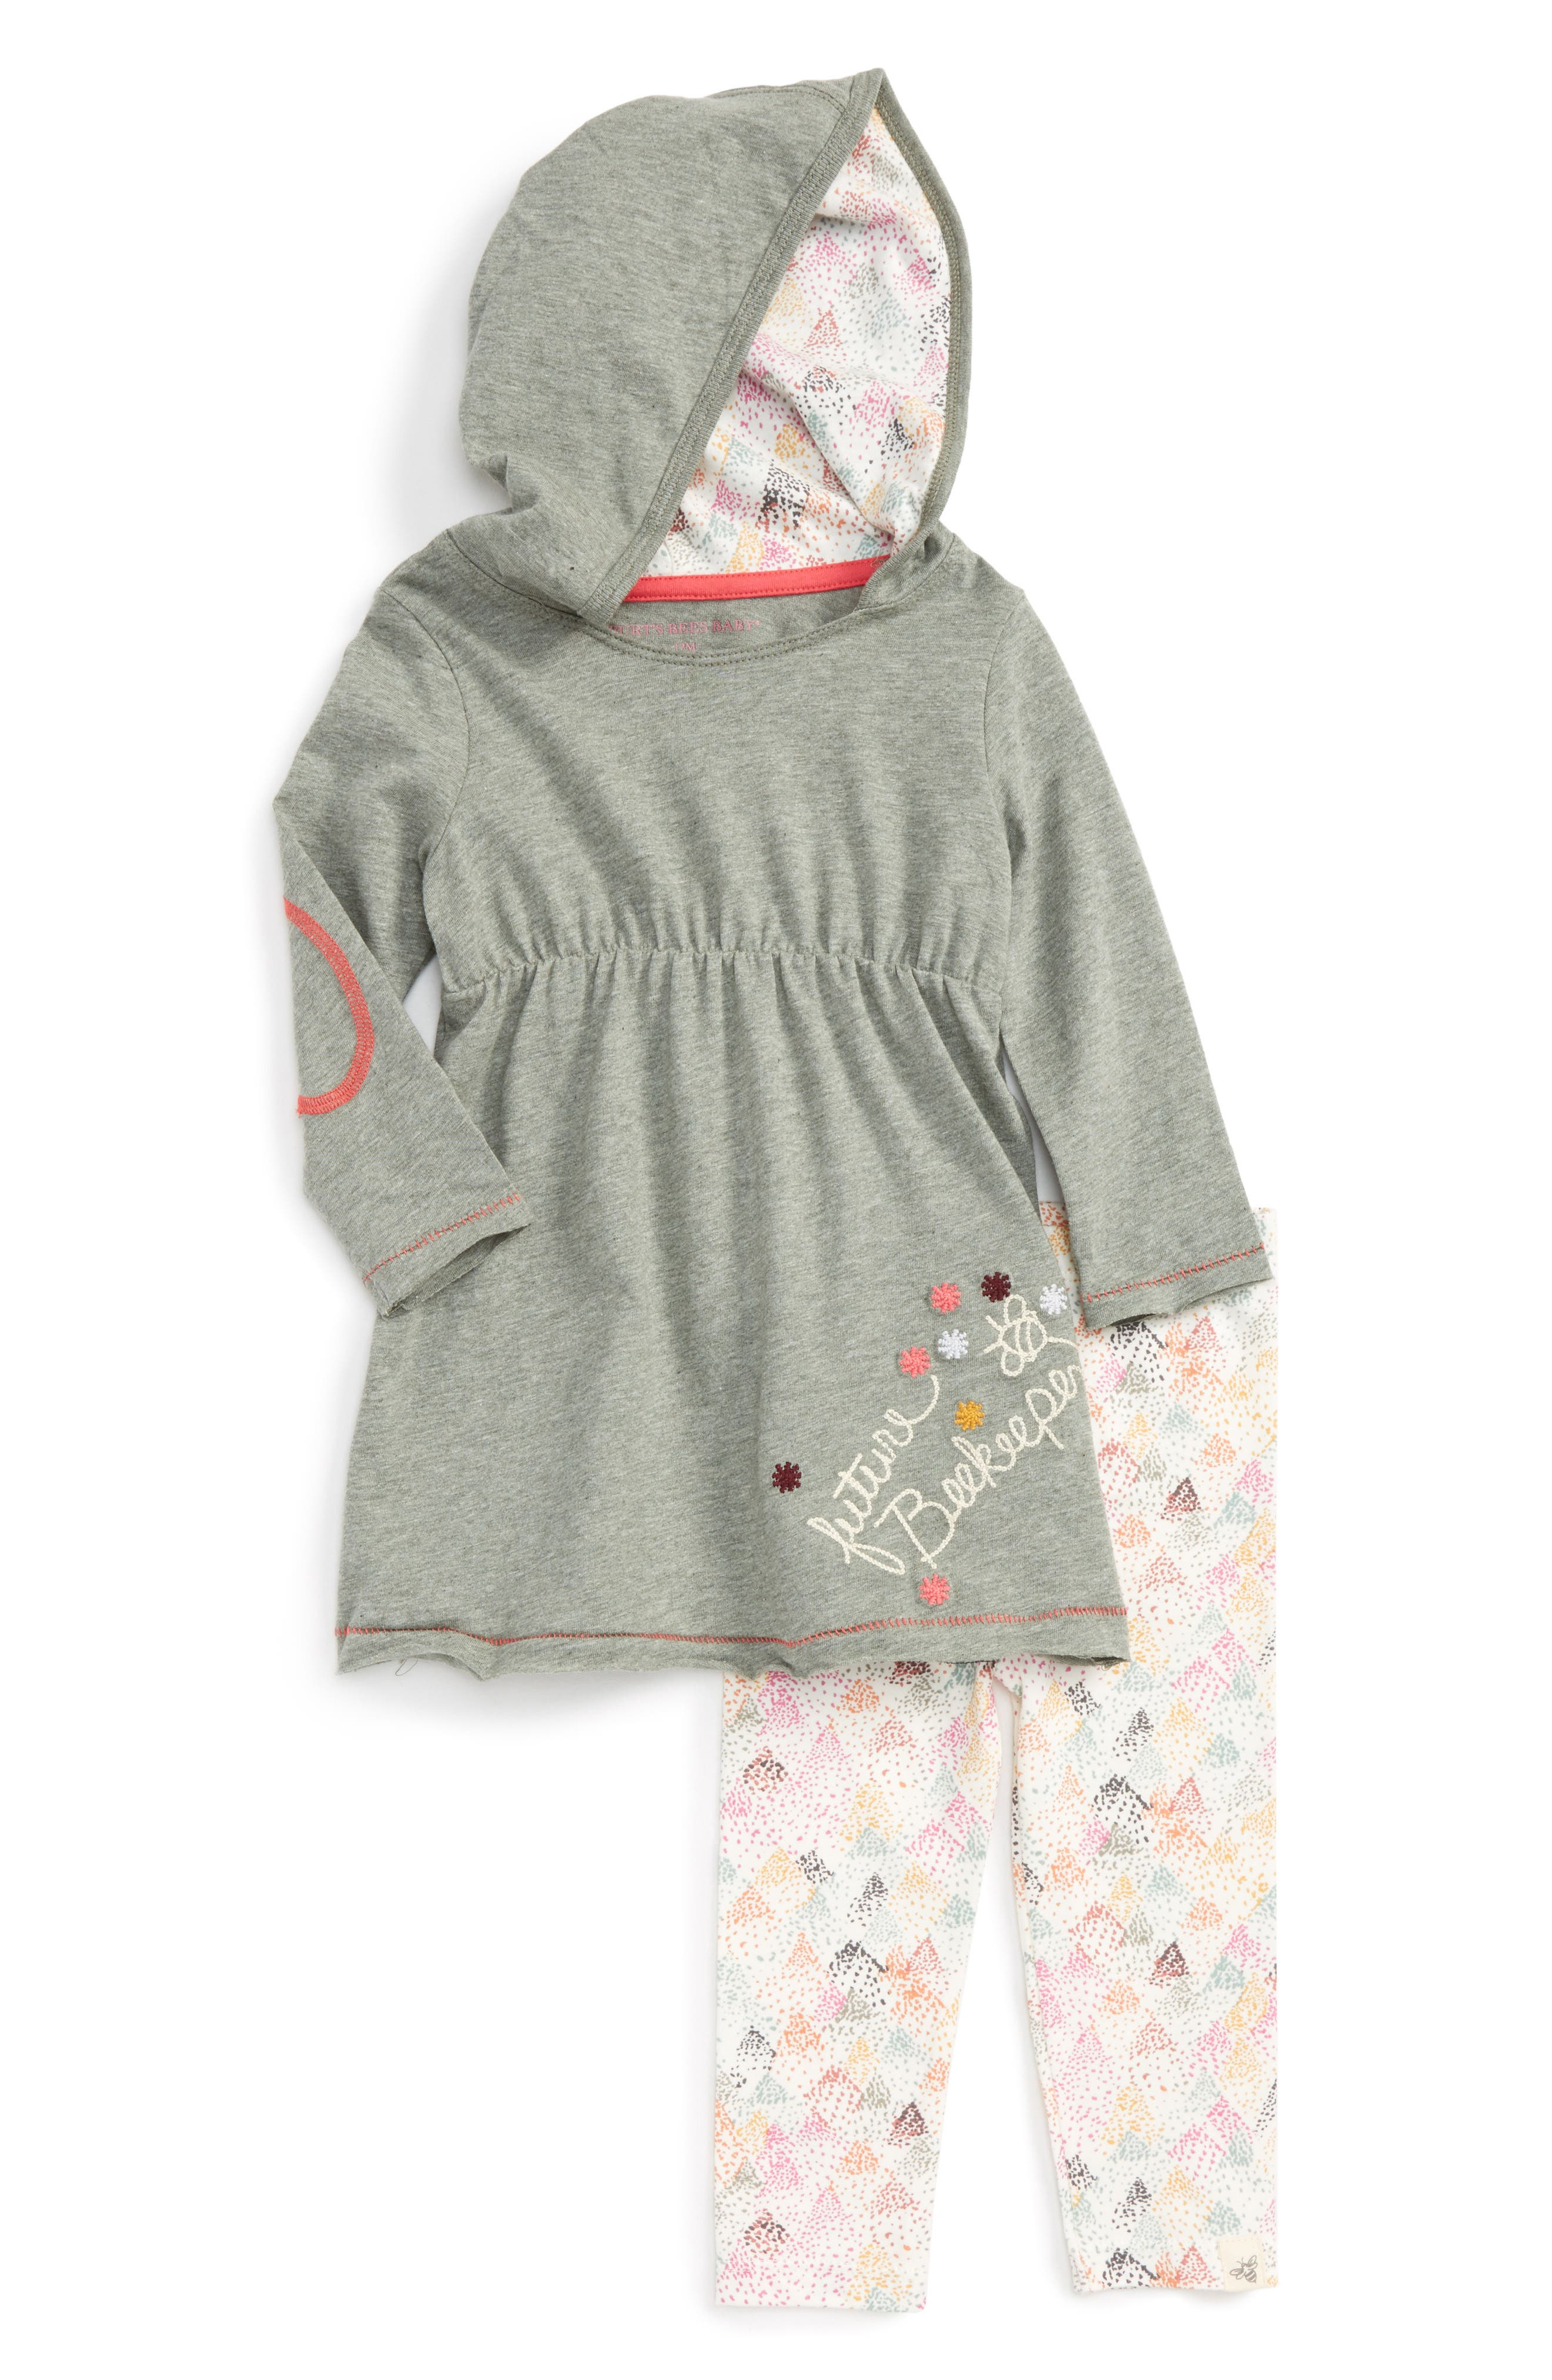 Burt's Bees Baby Embroidered Organic Cotton Hooded Dress & Leggings Set (Baby Girls)